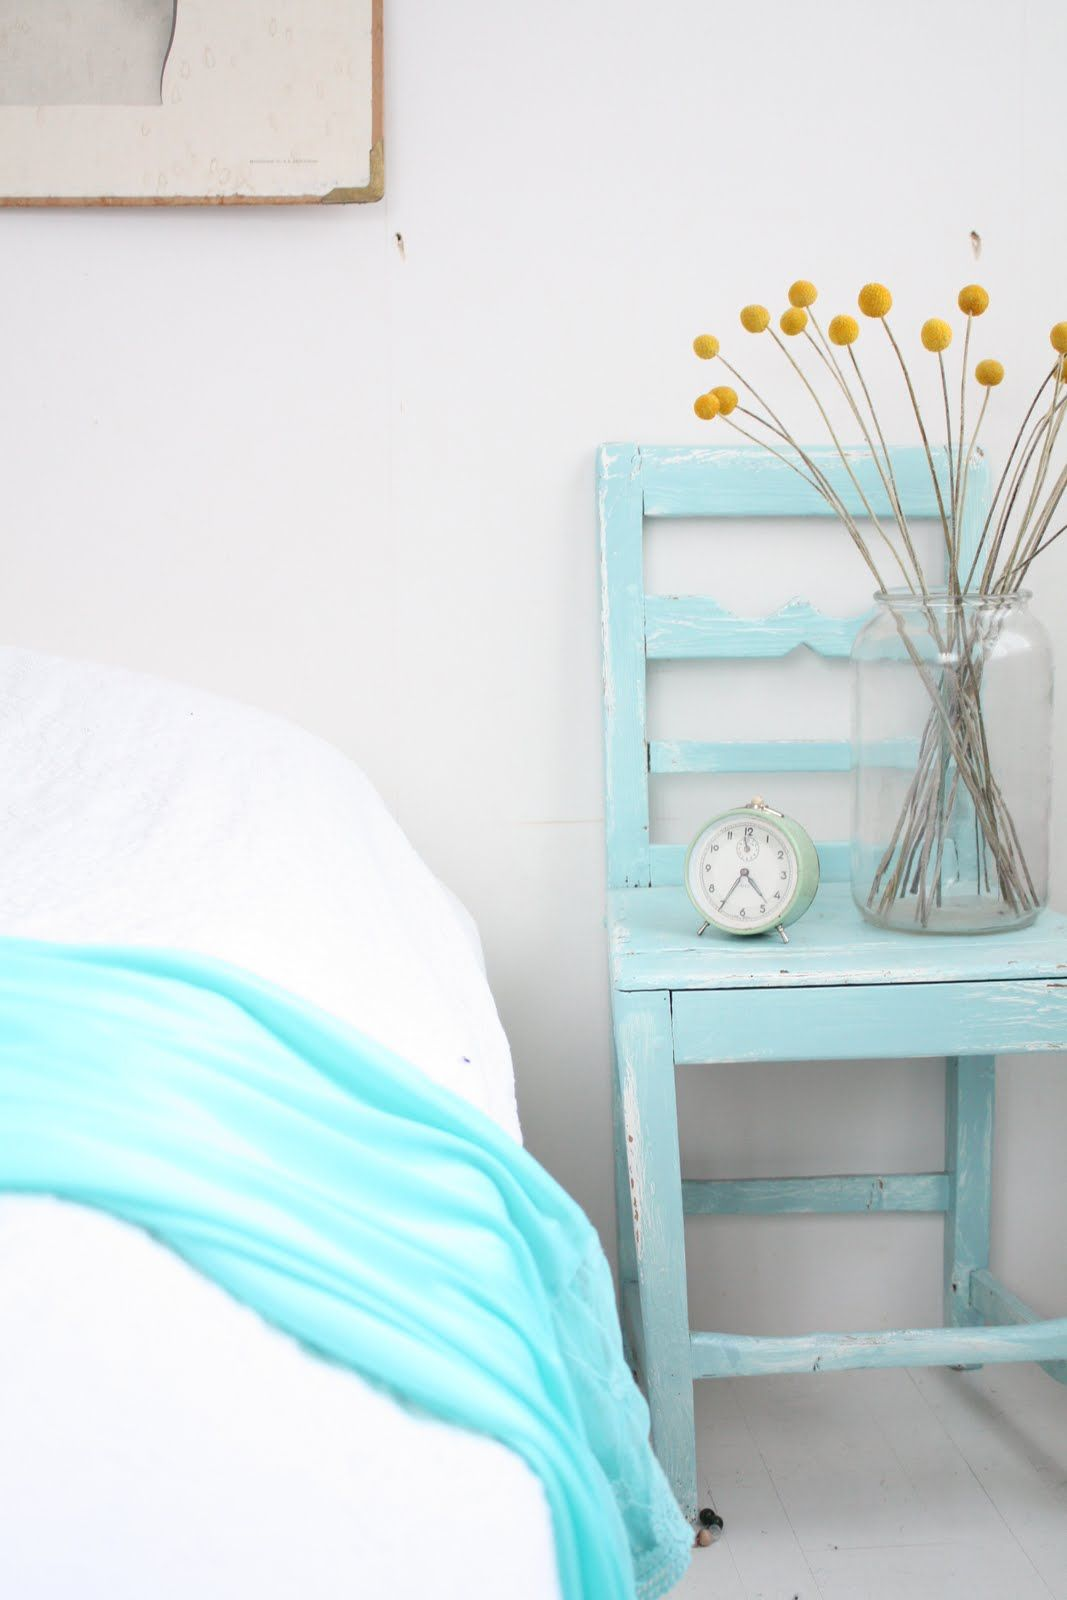 The nightstand that disappears into the wall